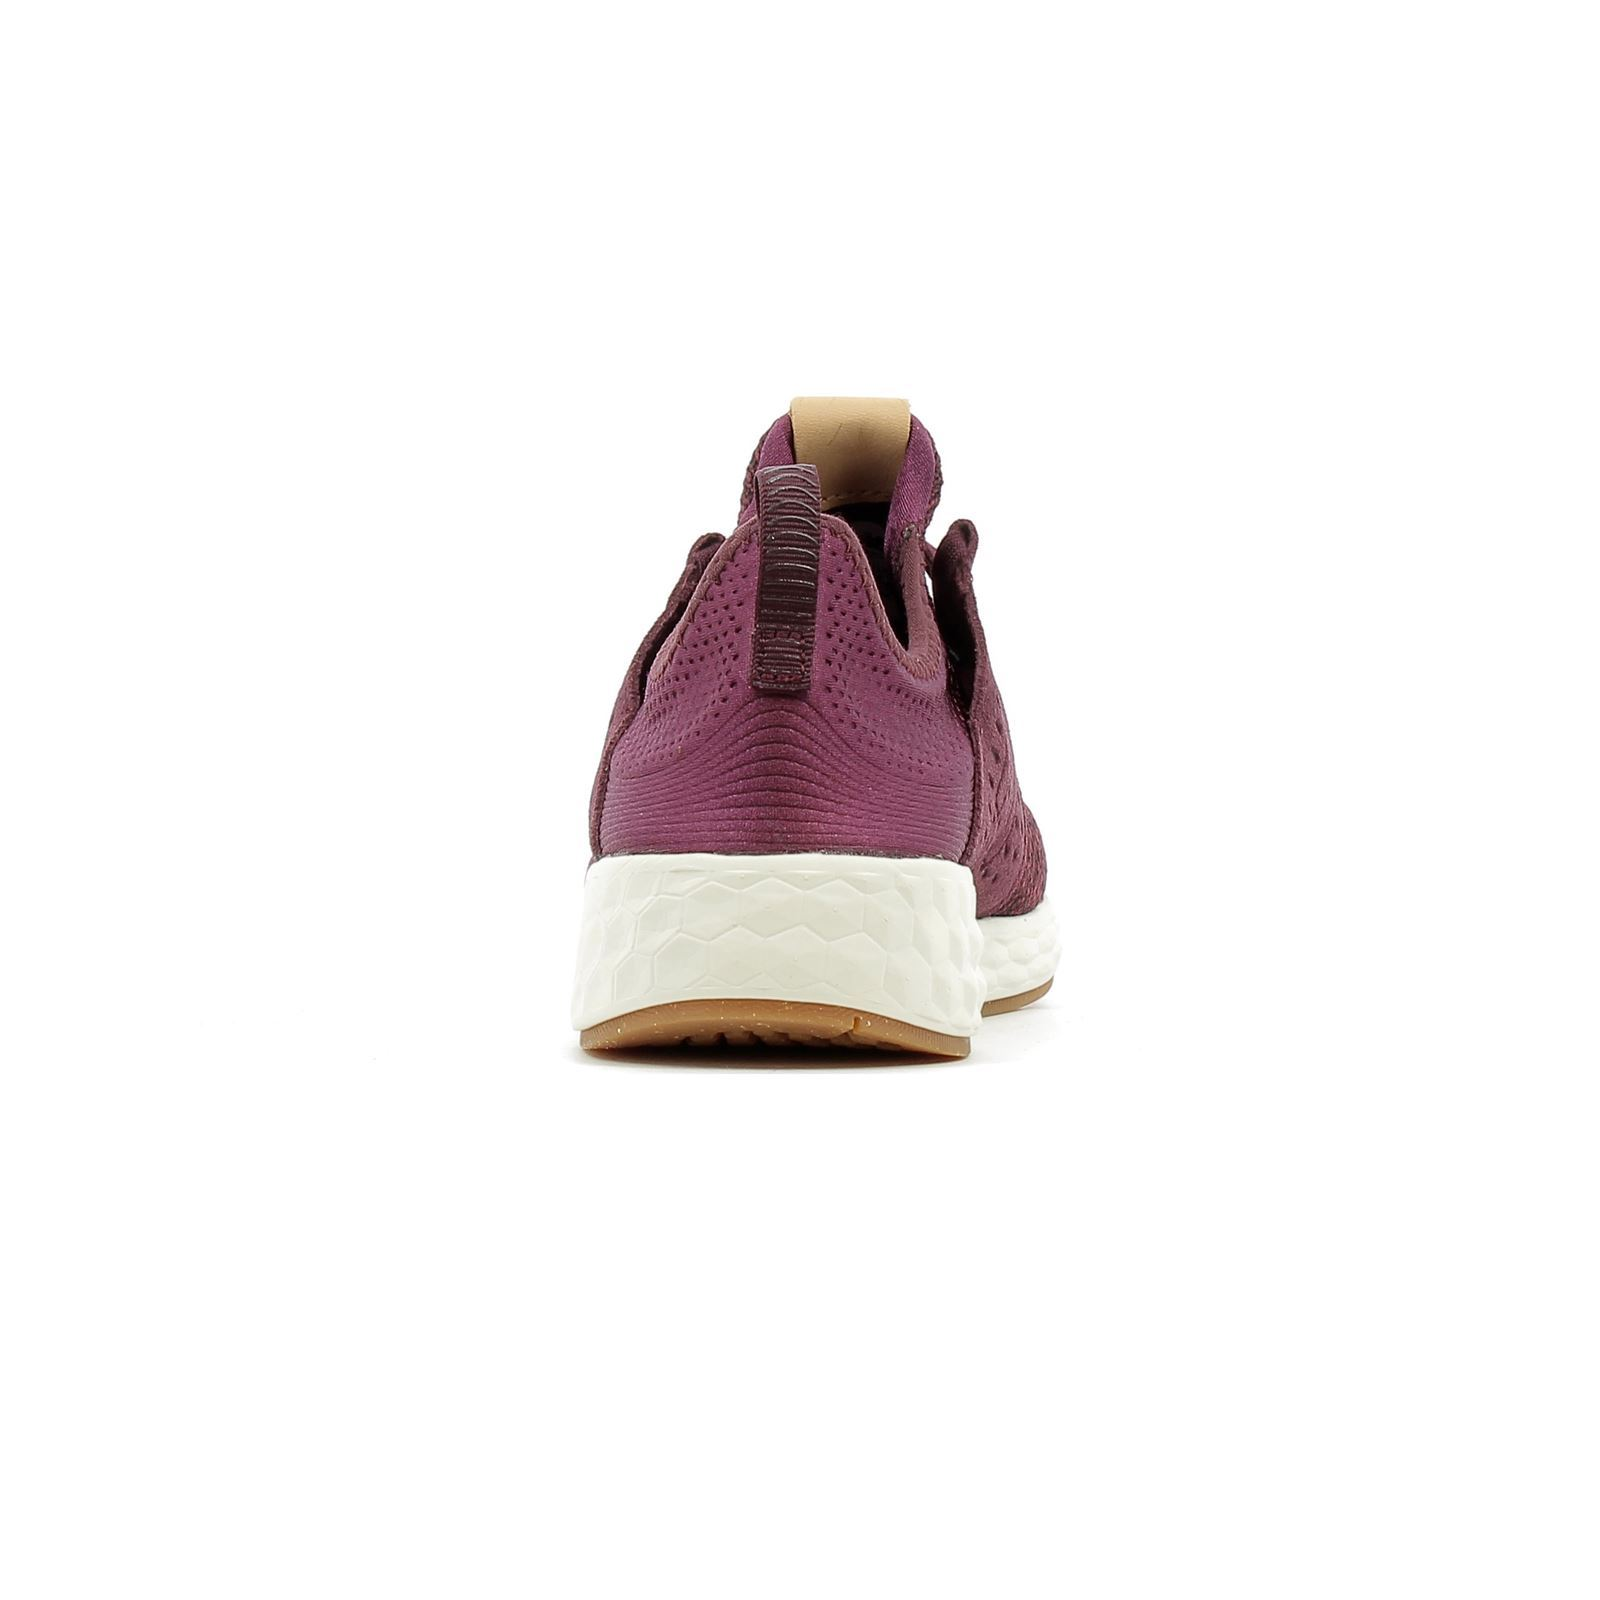 Balance Baskets Mcruz New Brandalley D Bordeaux qdtwvz